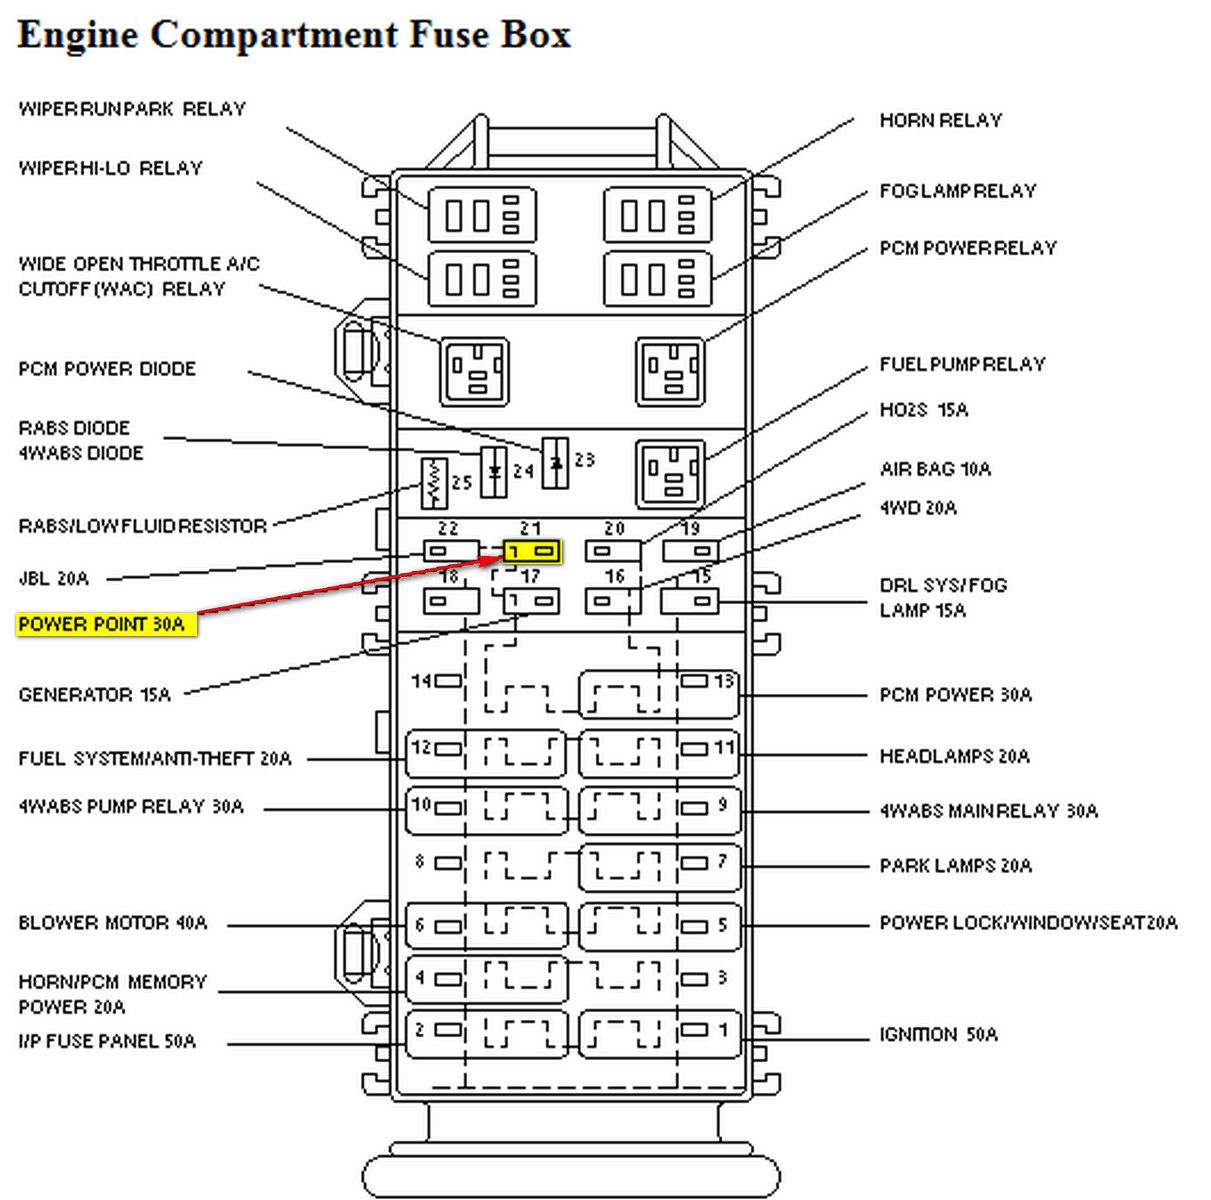 medium resolution of wrg 4838 2002 ford f 150 fx4 fuse panel diagram1996 f250 fuse box diagram